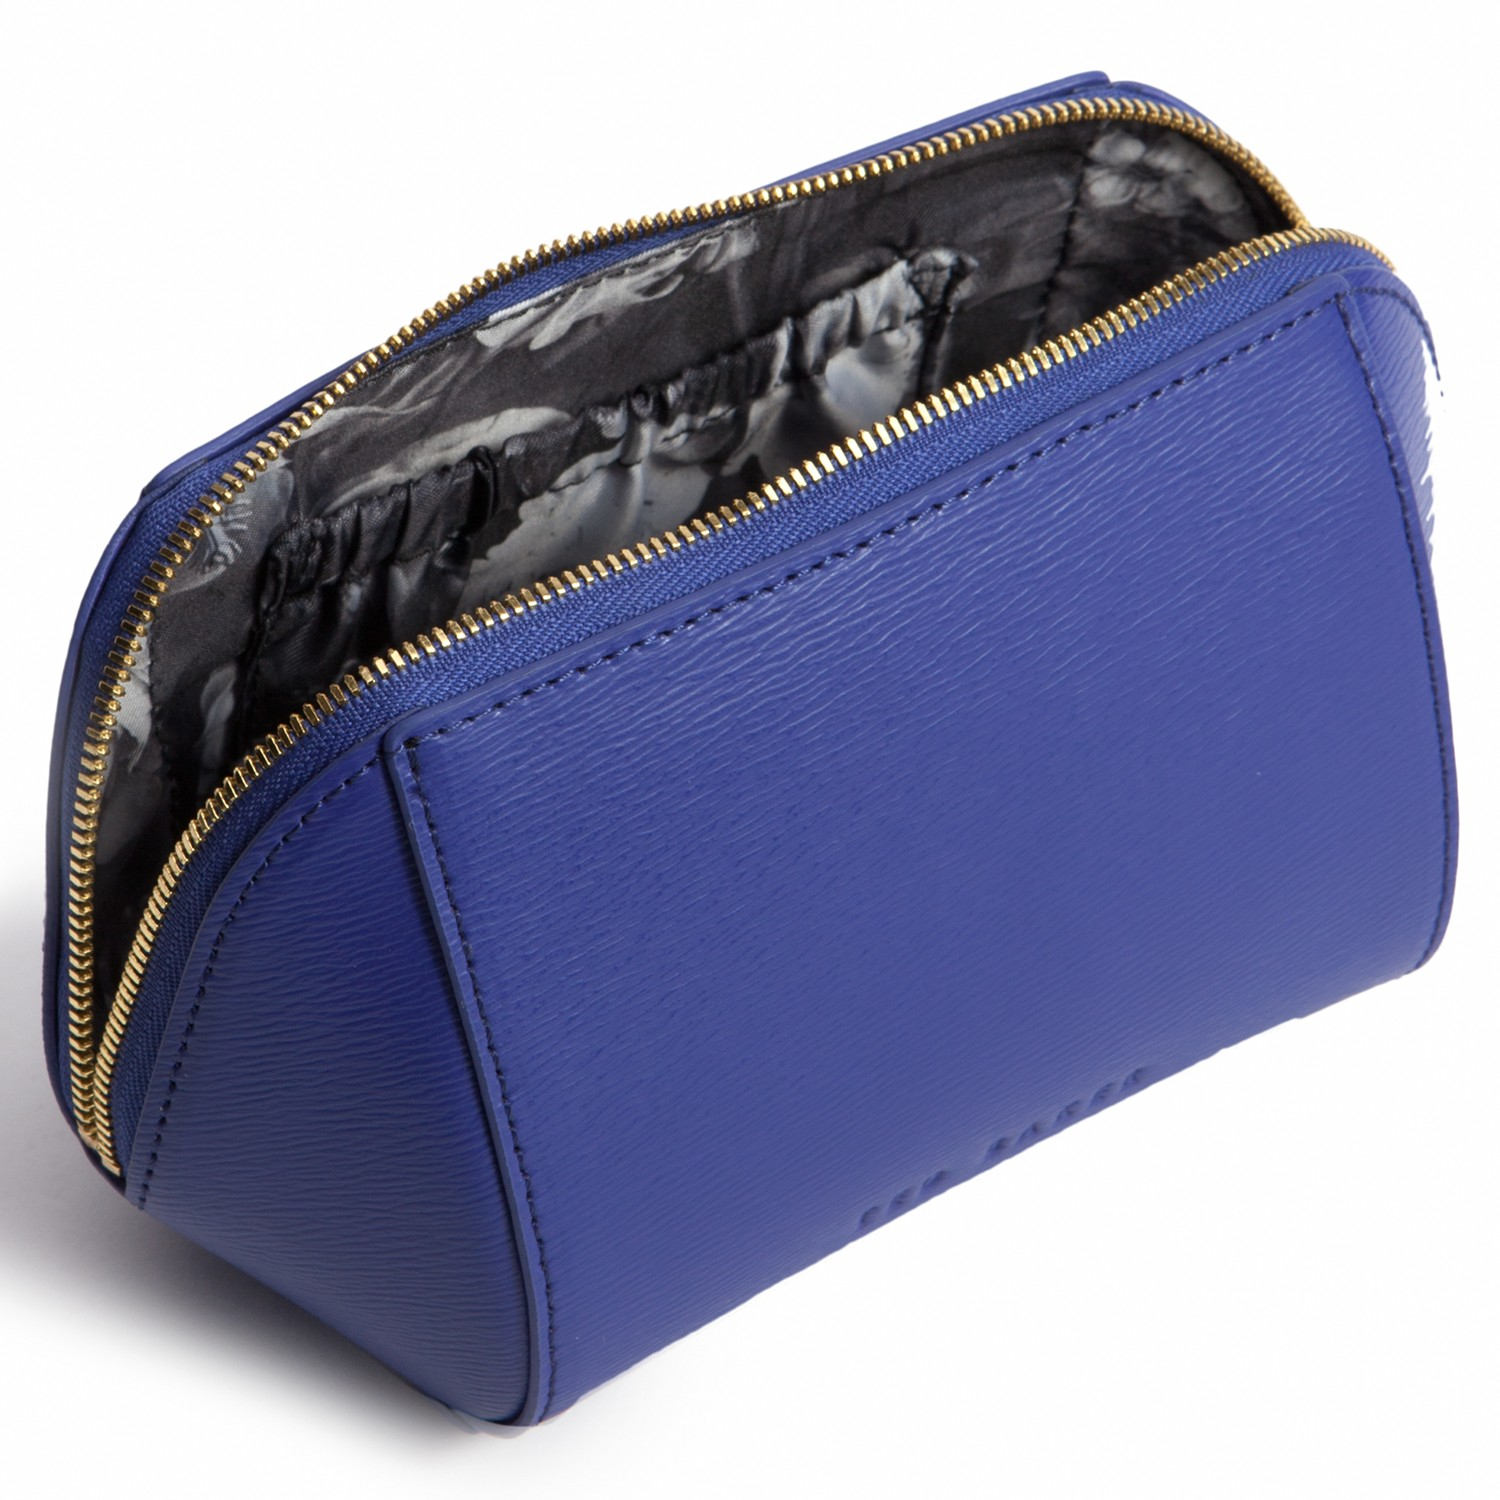 3982b9049d2052 Ted Baker Kular Small Crosshatch Make-up Bag in Blue - Lyst